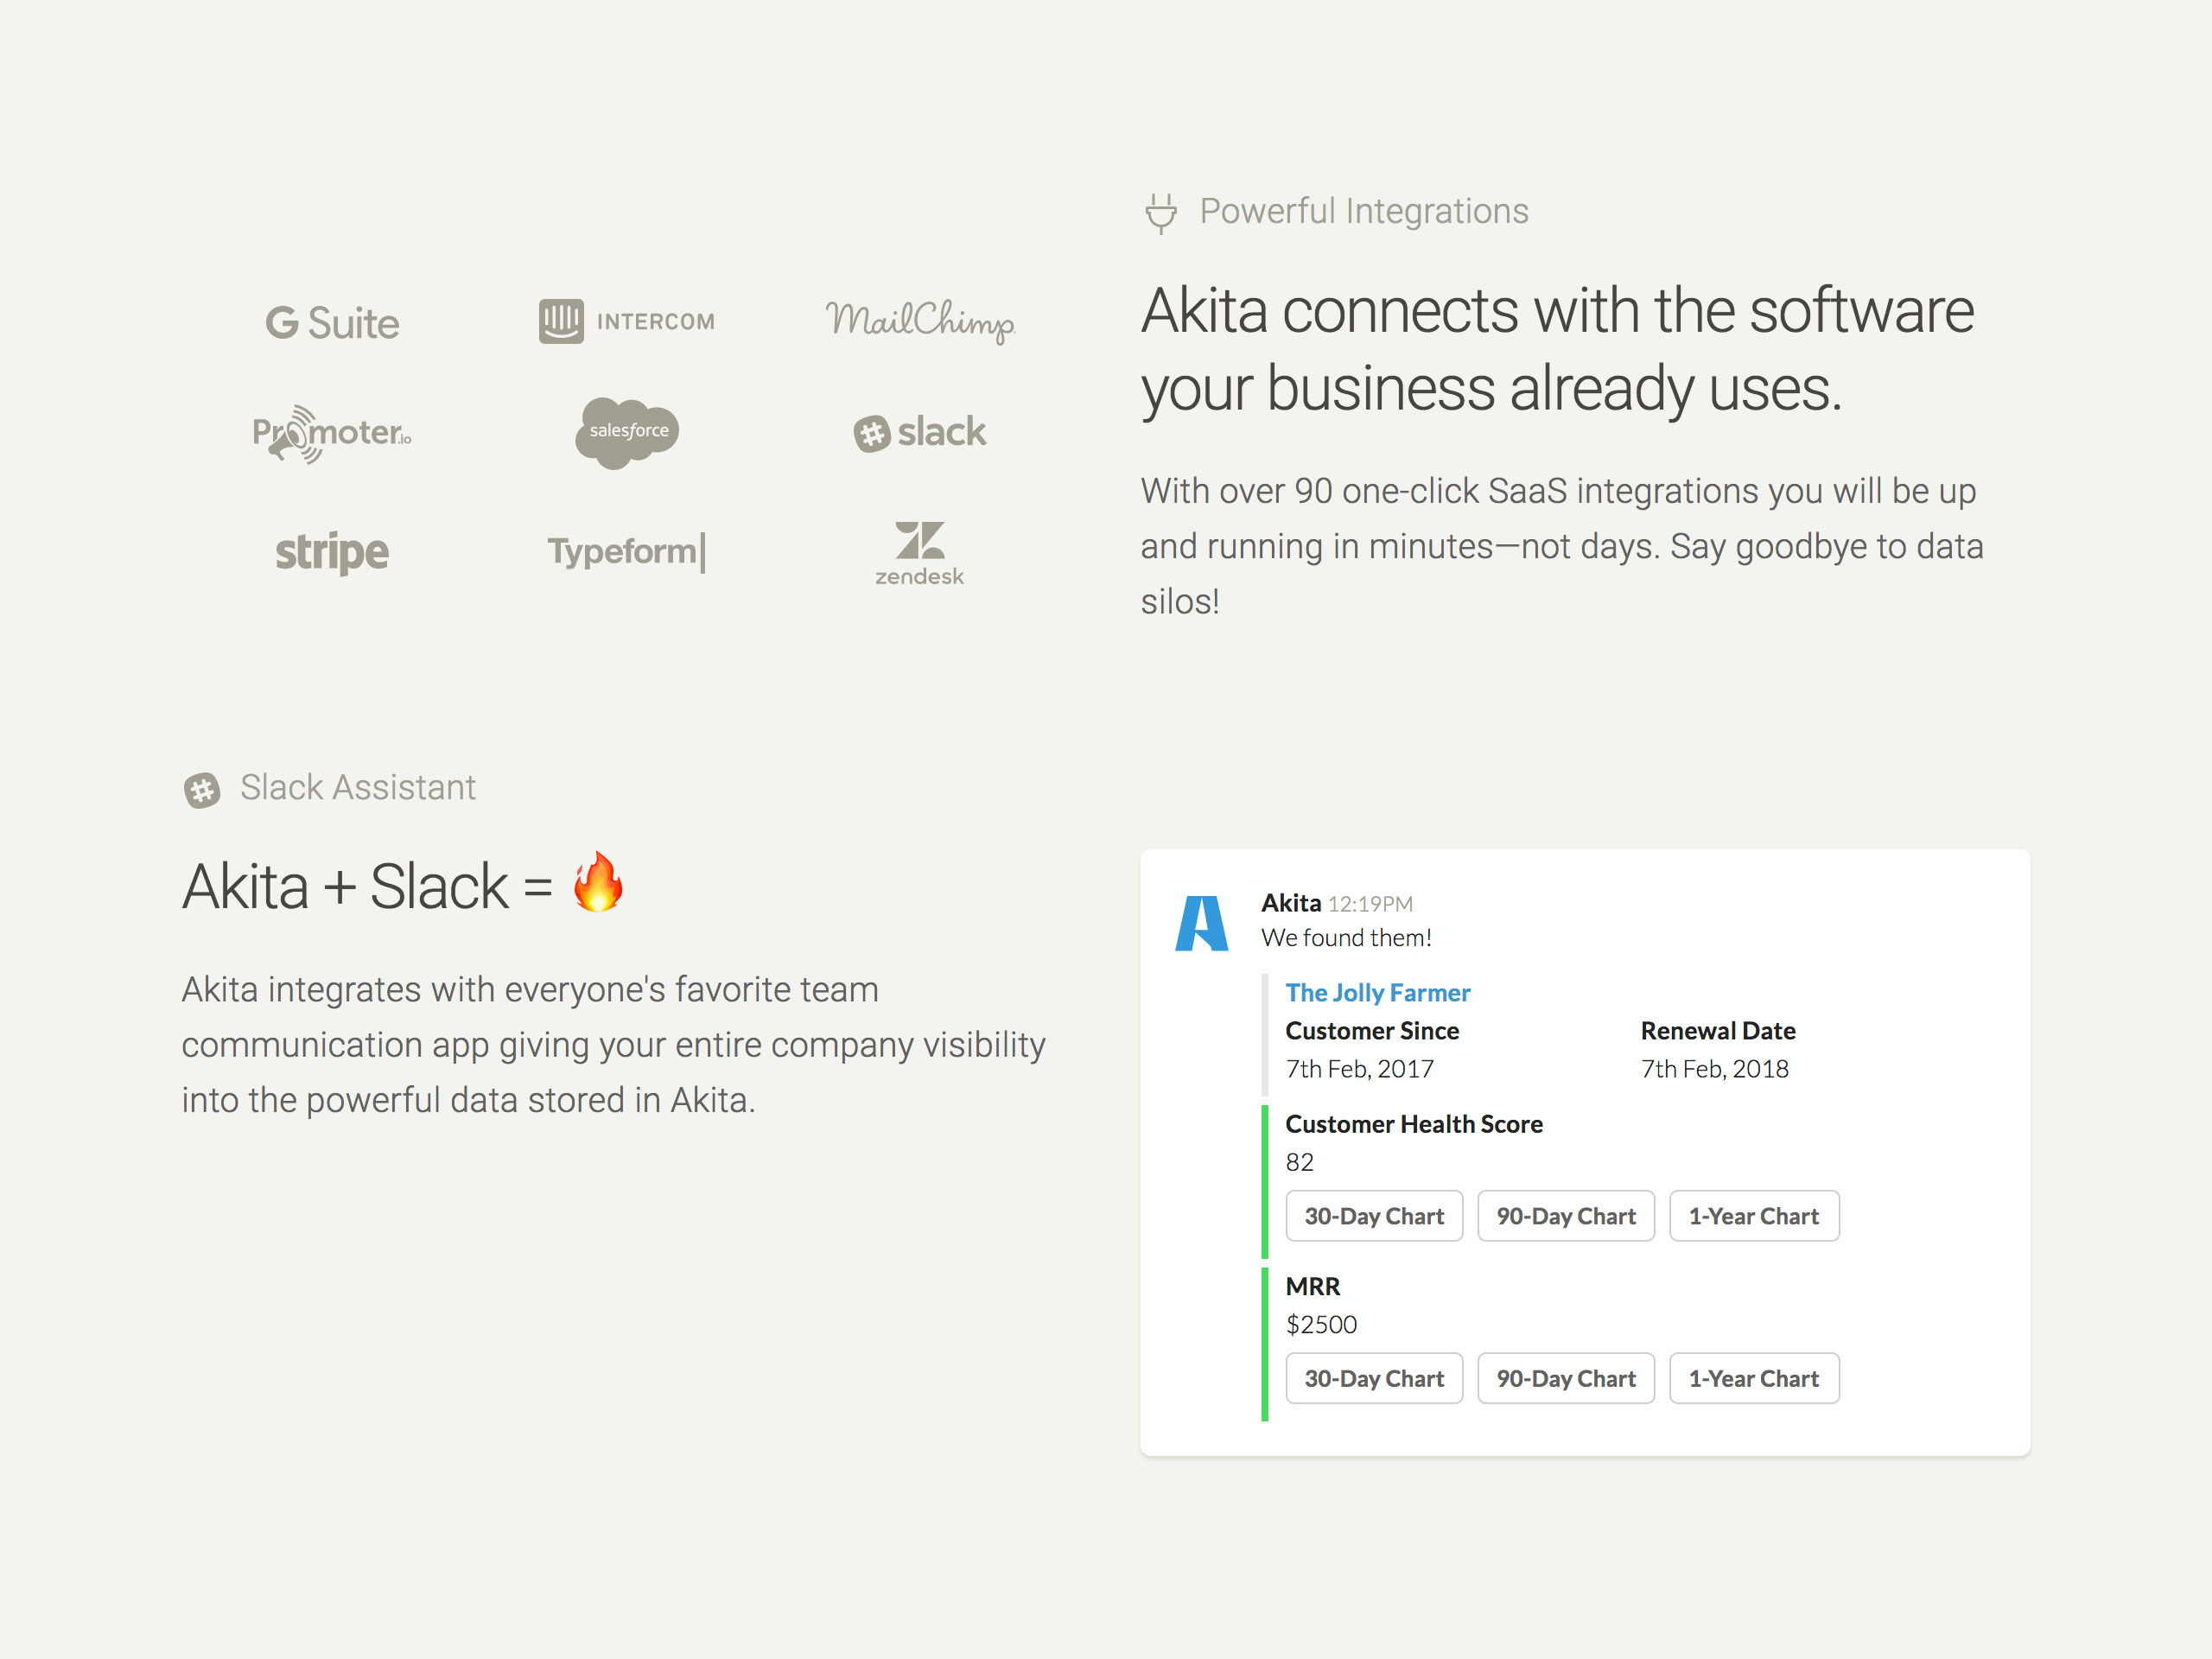 Akita connects with the software your business already uses and our Slack assistant will keep the entire organization informed of your Customer Success efforts.